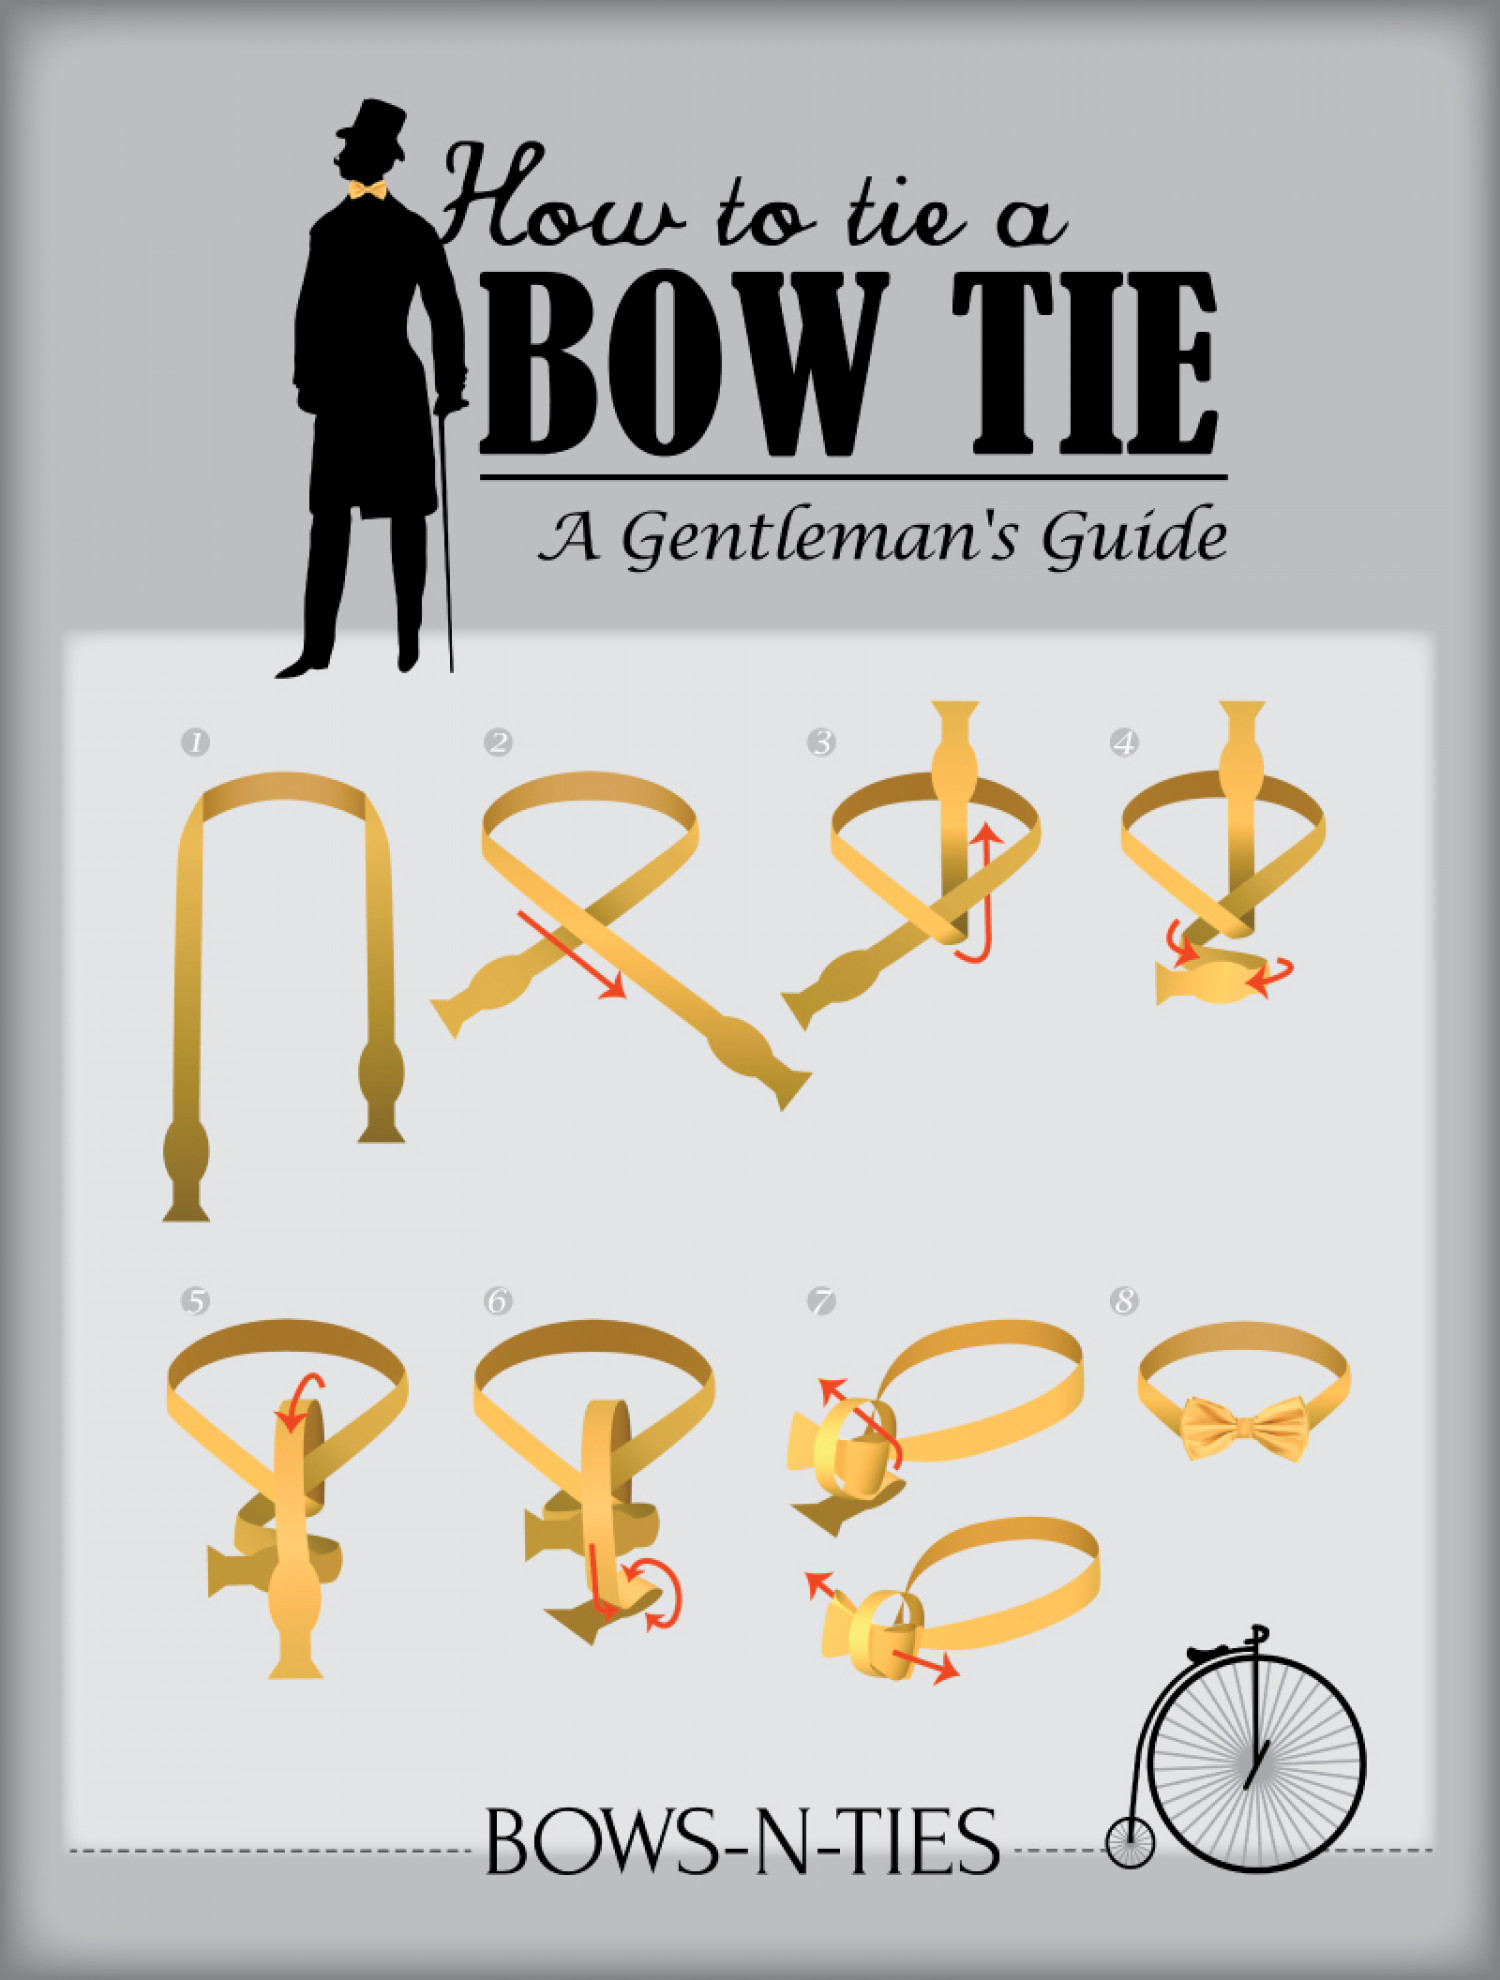 Gentlemans guide to tying a bow tie visual gentlemans guide to tying a bow tie infographic ccuart Image collections